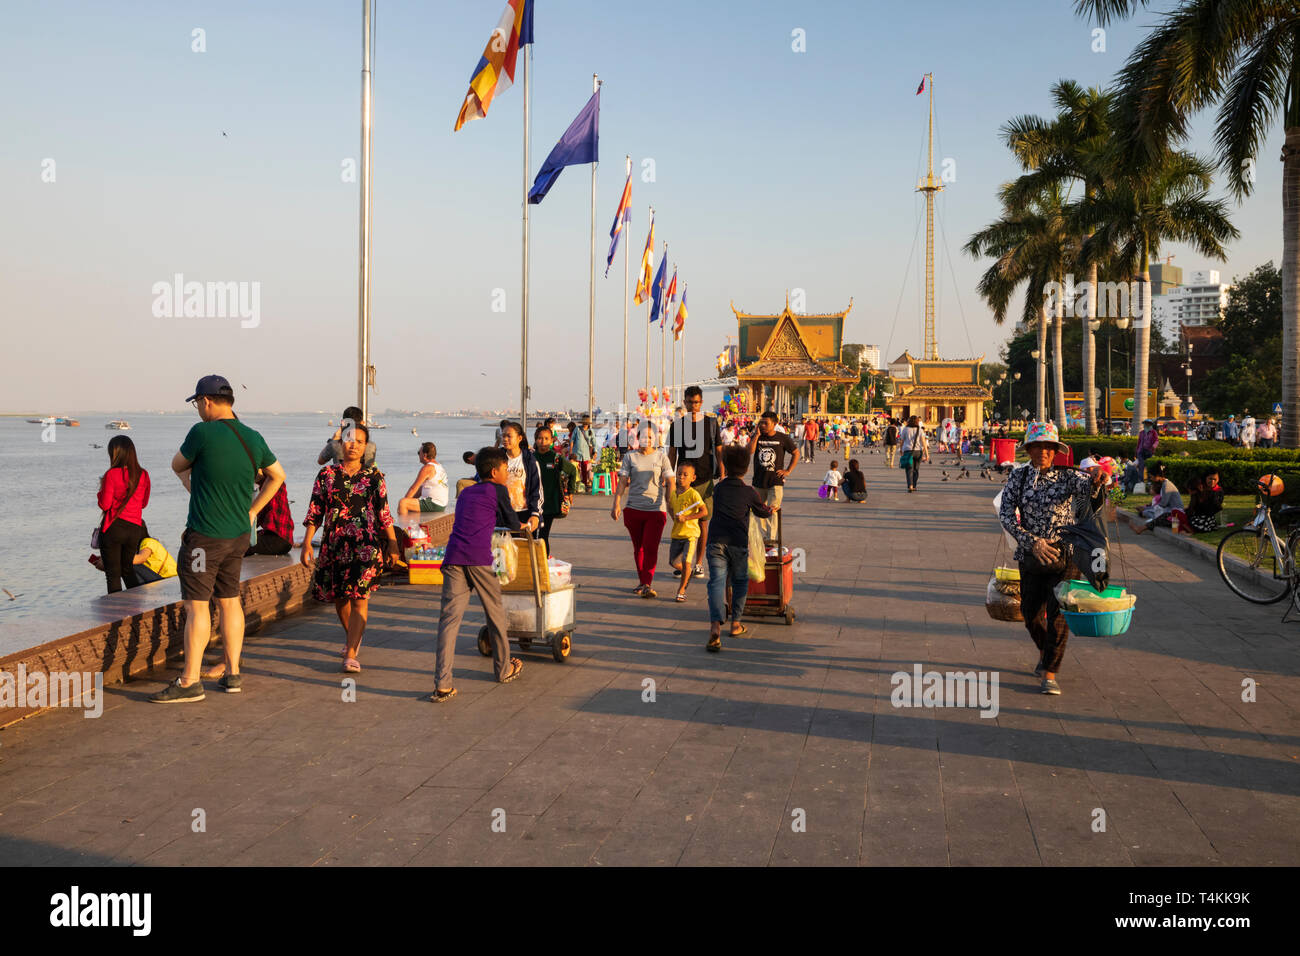 Riverside scene at sunset near the Royal Palace, Sisowath Quay, Phnom Penh, Cambodia, Southeast Asia, Asia - Stock Image